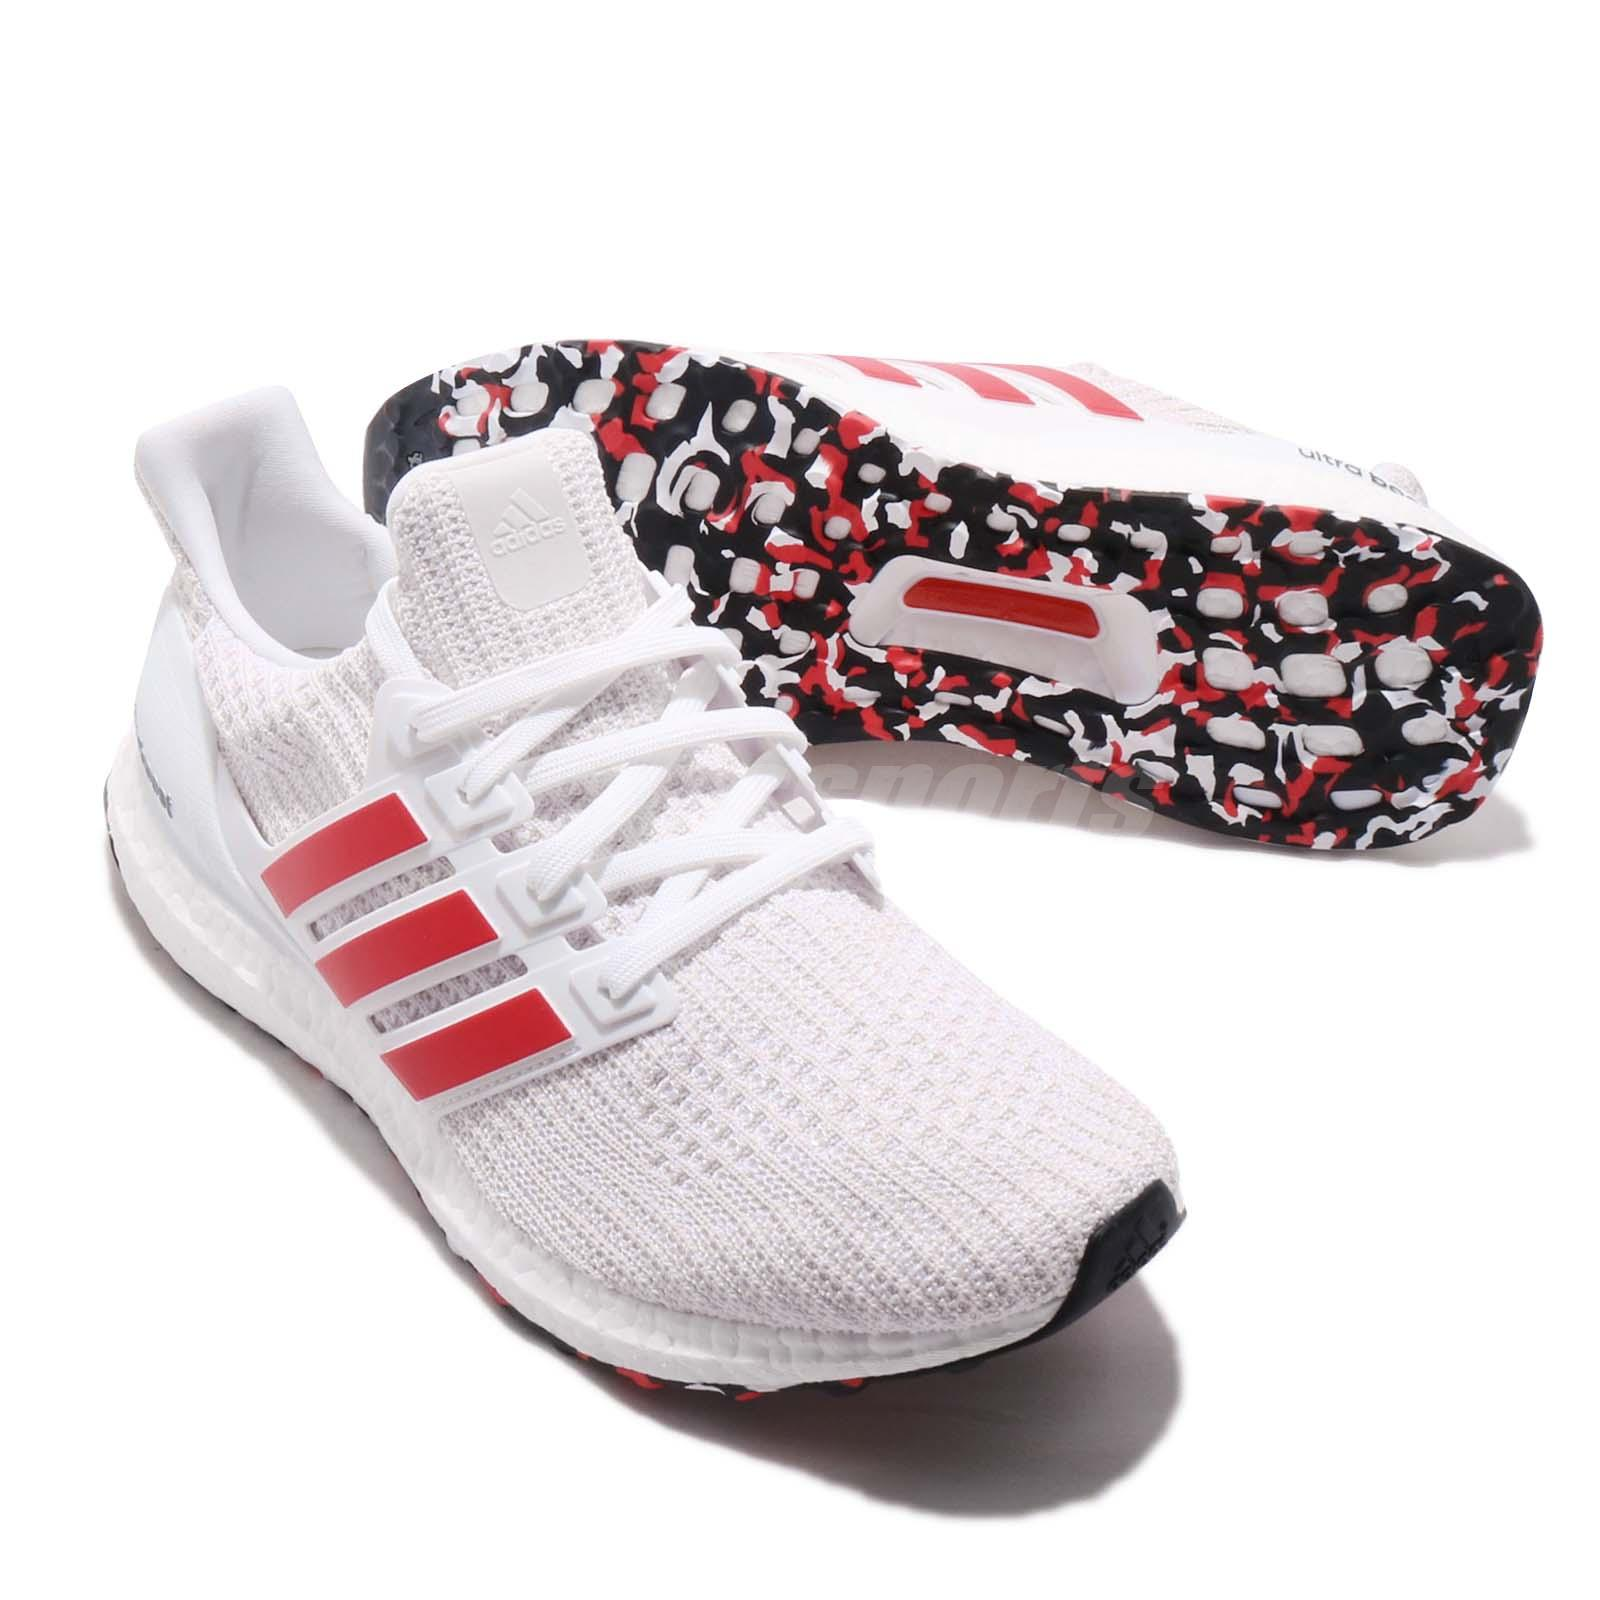 048922a42fa adidas UltraBoost 4.0 Active Red Stripes White Men Running Shoes ...